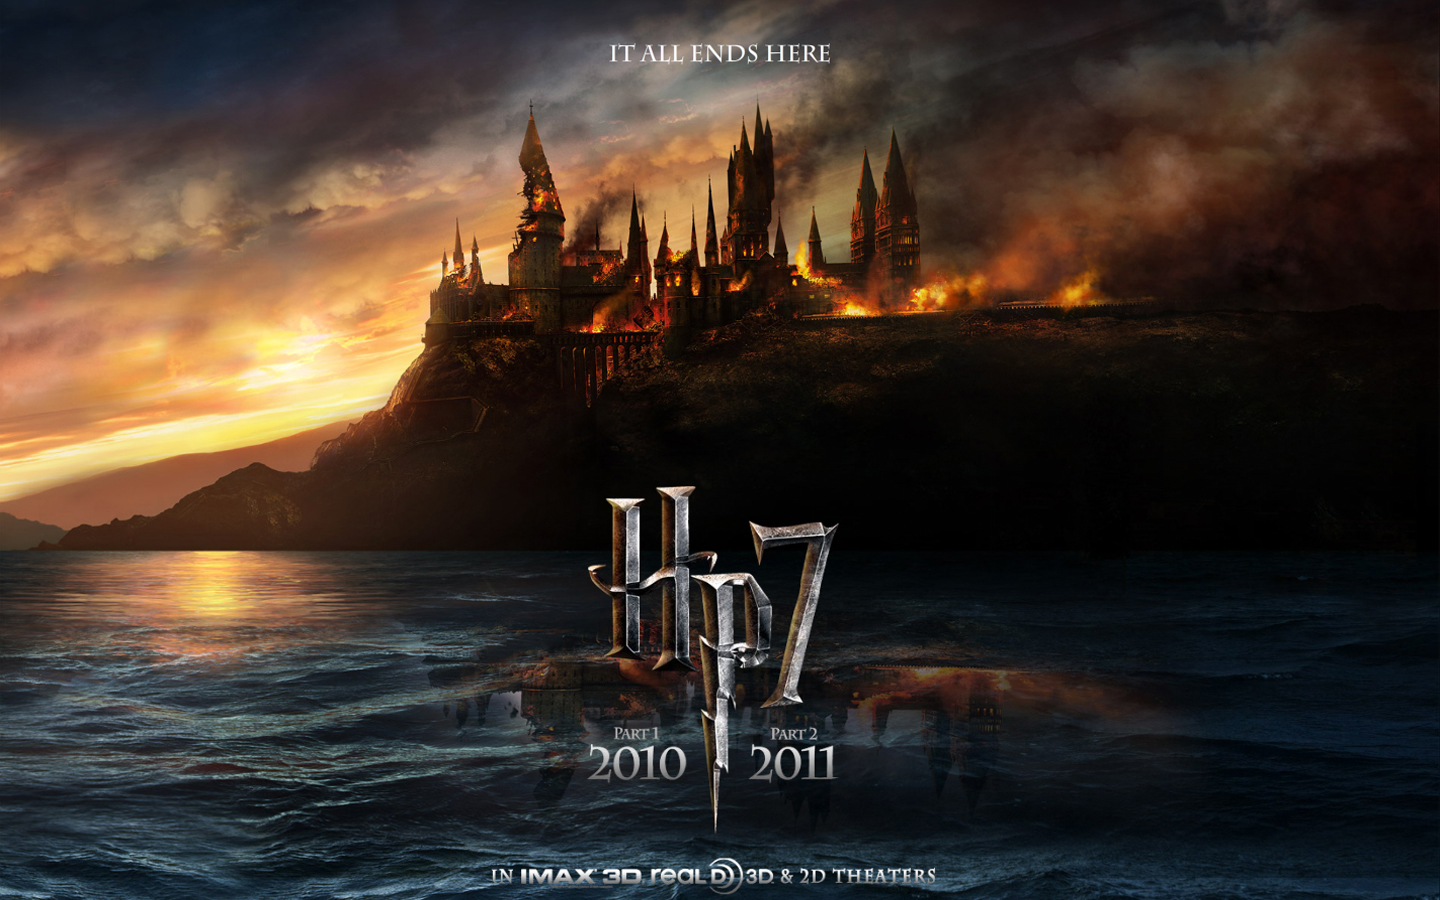 http://1.bp.blogspot.com/_GCAuqodmOE4/TPbXDQ0y5MI/AAAAAAAAFFs/5VVR8P9SzVw/s1600/Harry-Potter-and-The-Deathly-Hallows.jpg